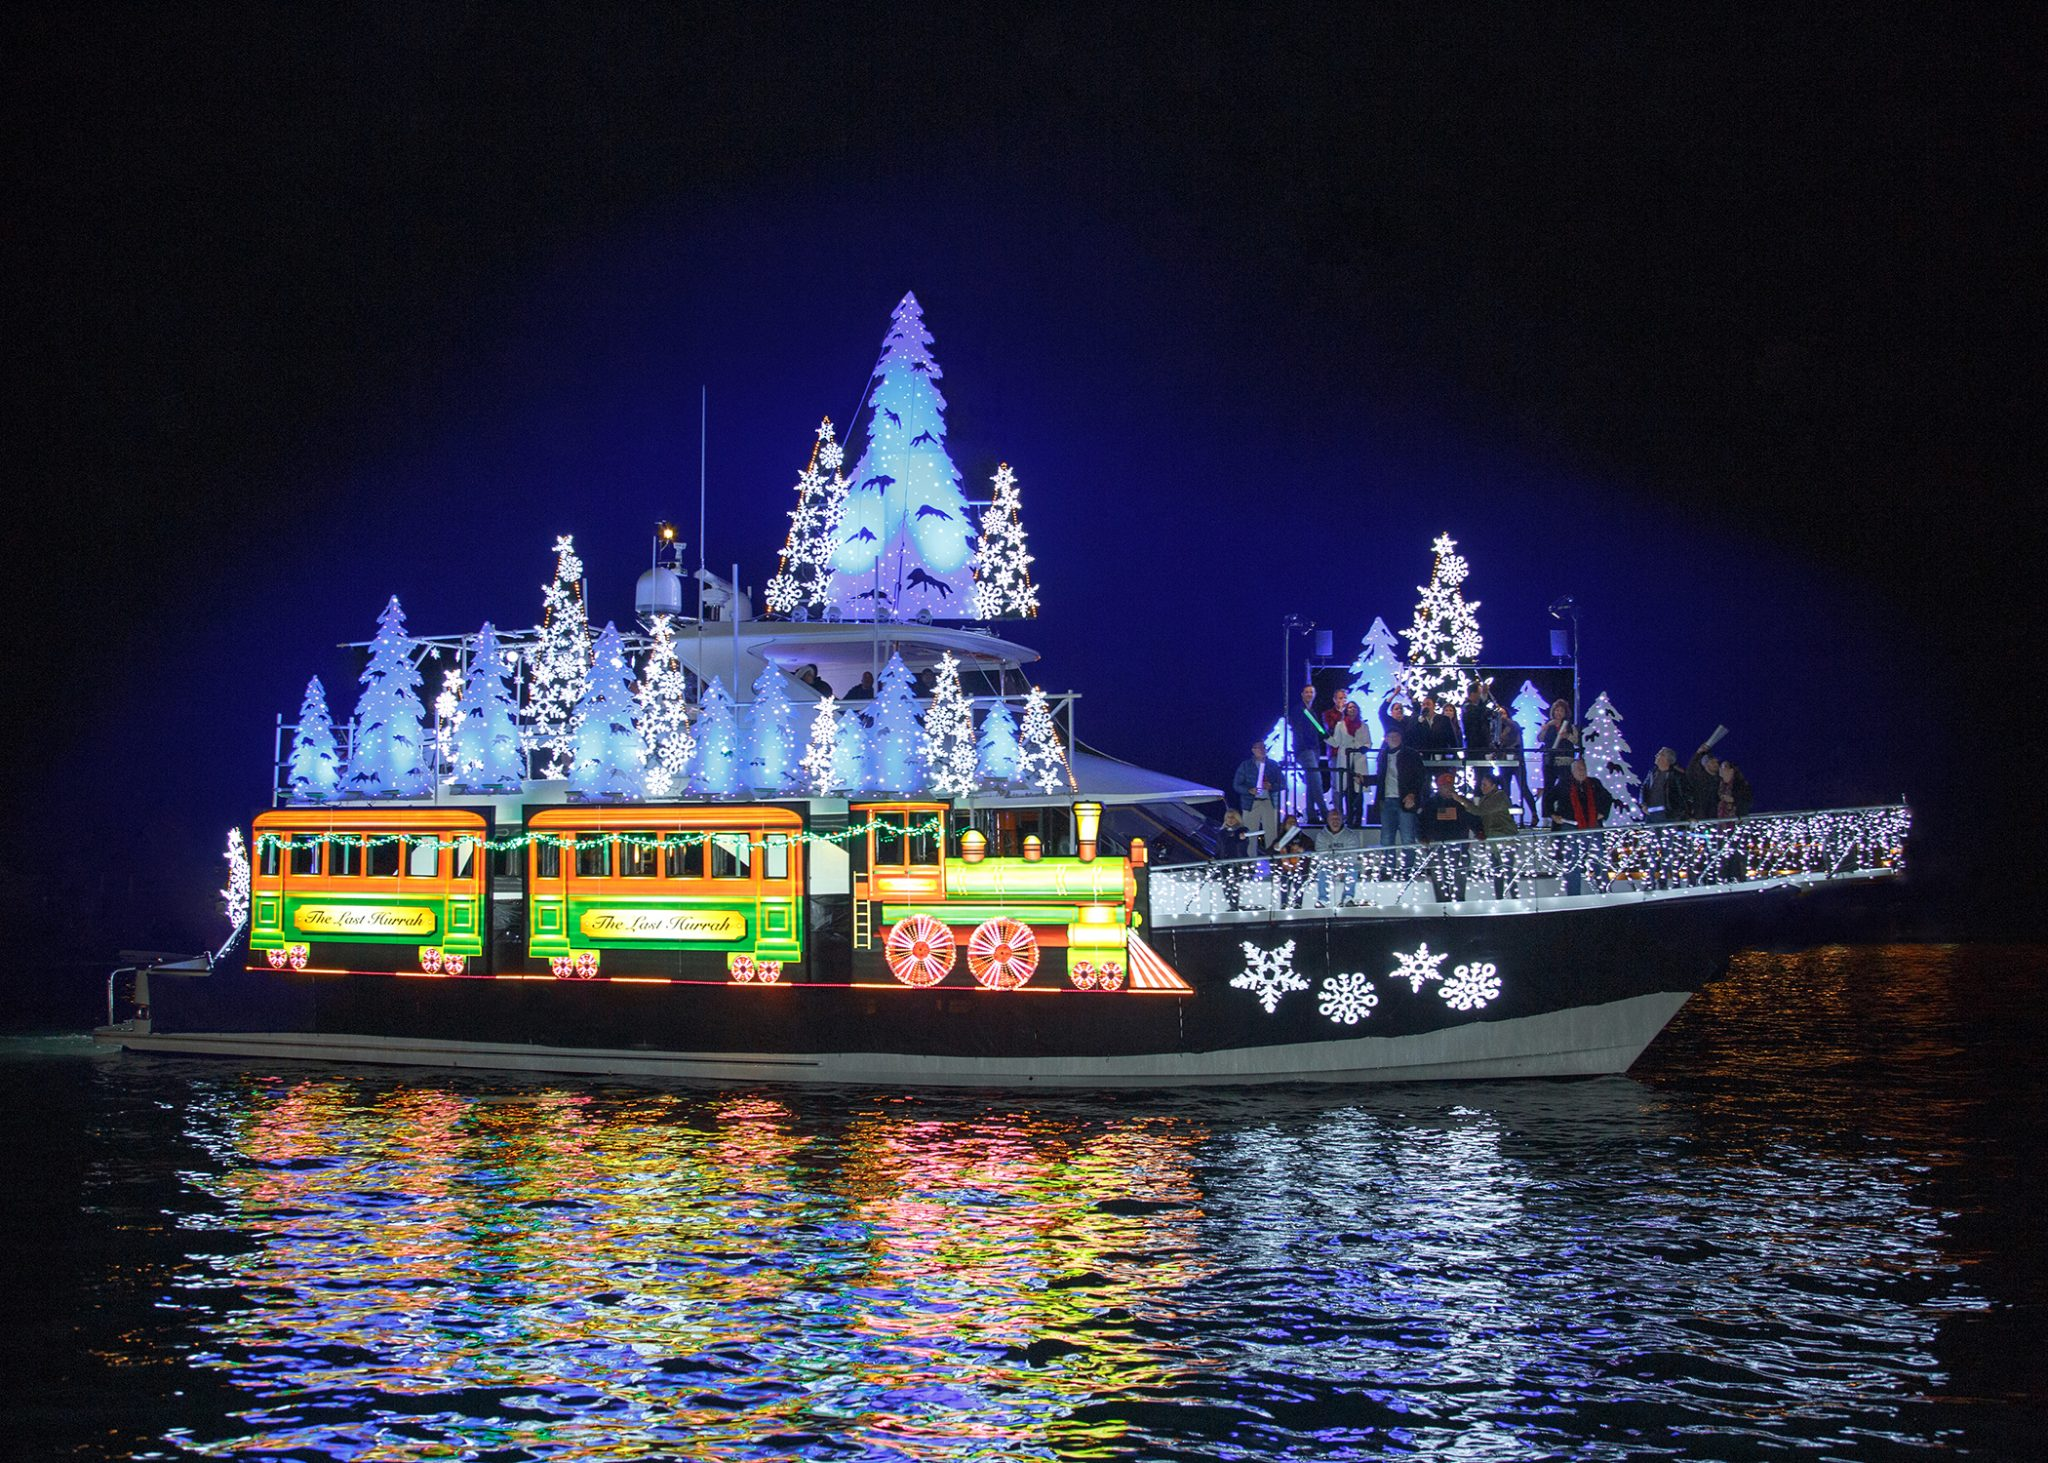 Newport Beach Boat Parade - Boat with blue lights